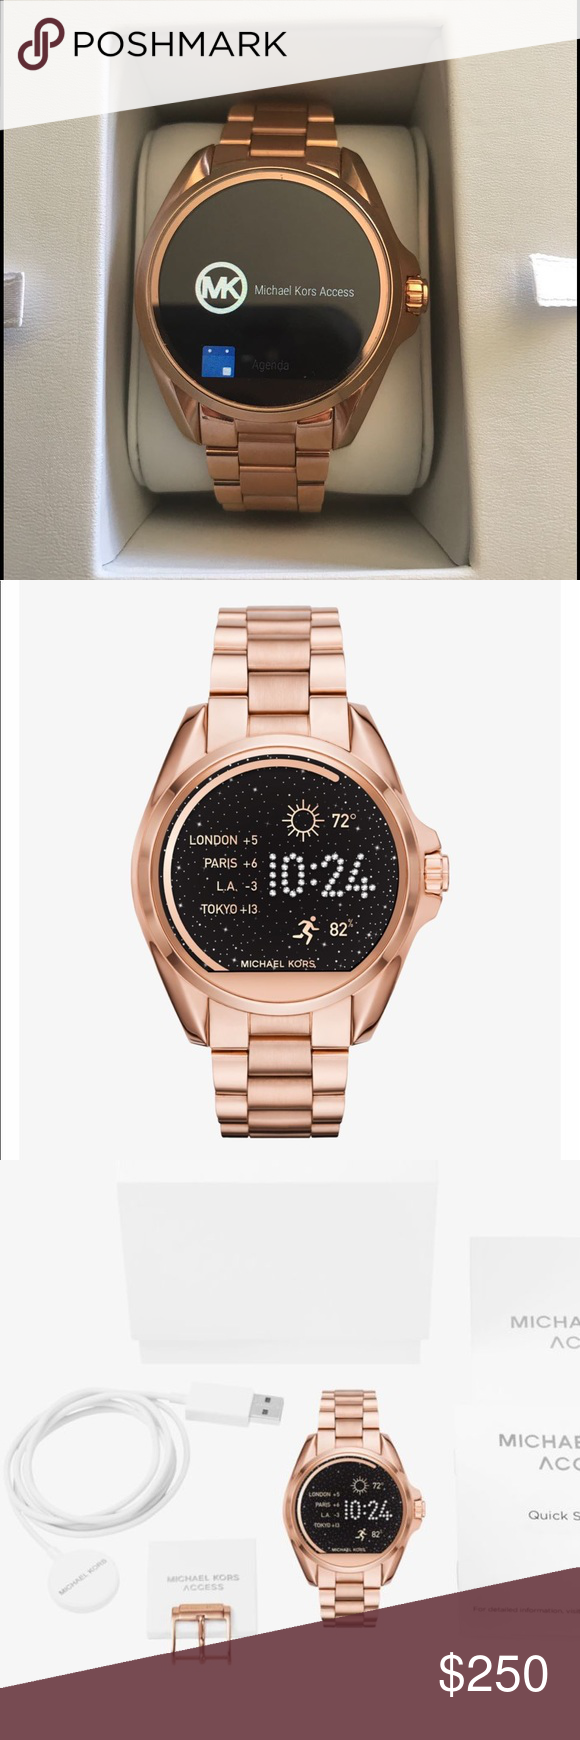 28a52c8fd86f Michael Kors smartwatch The Michael Kors access Bradshaw rose-gold tone  smart watch. Worn once. Includes everything from original packaging.